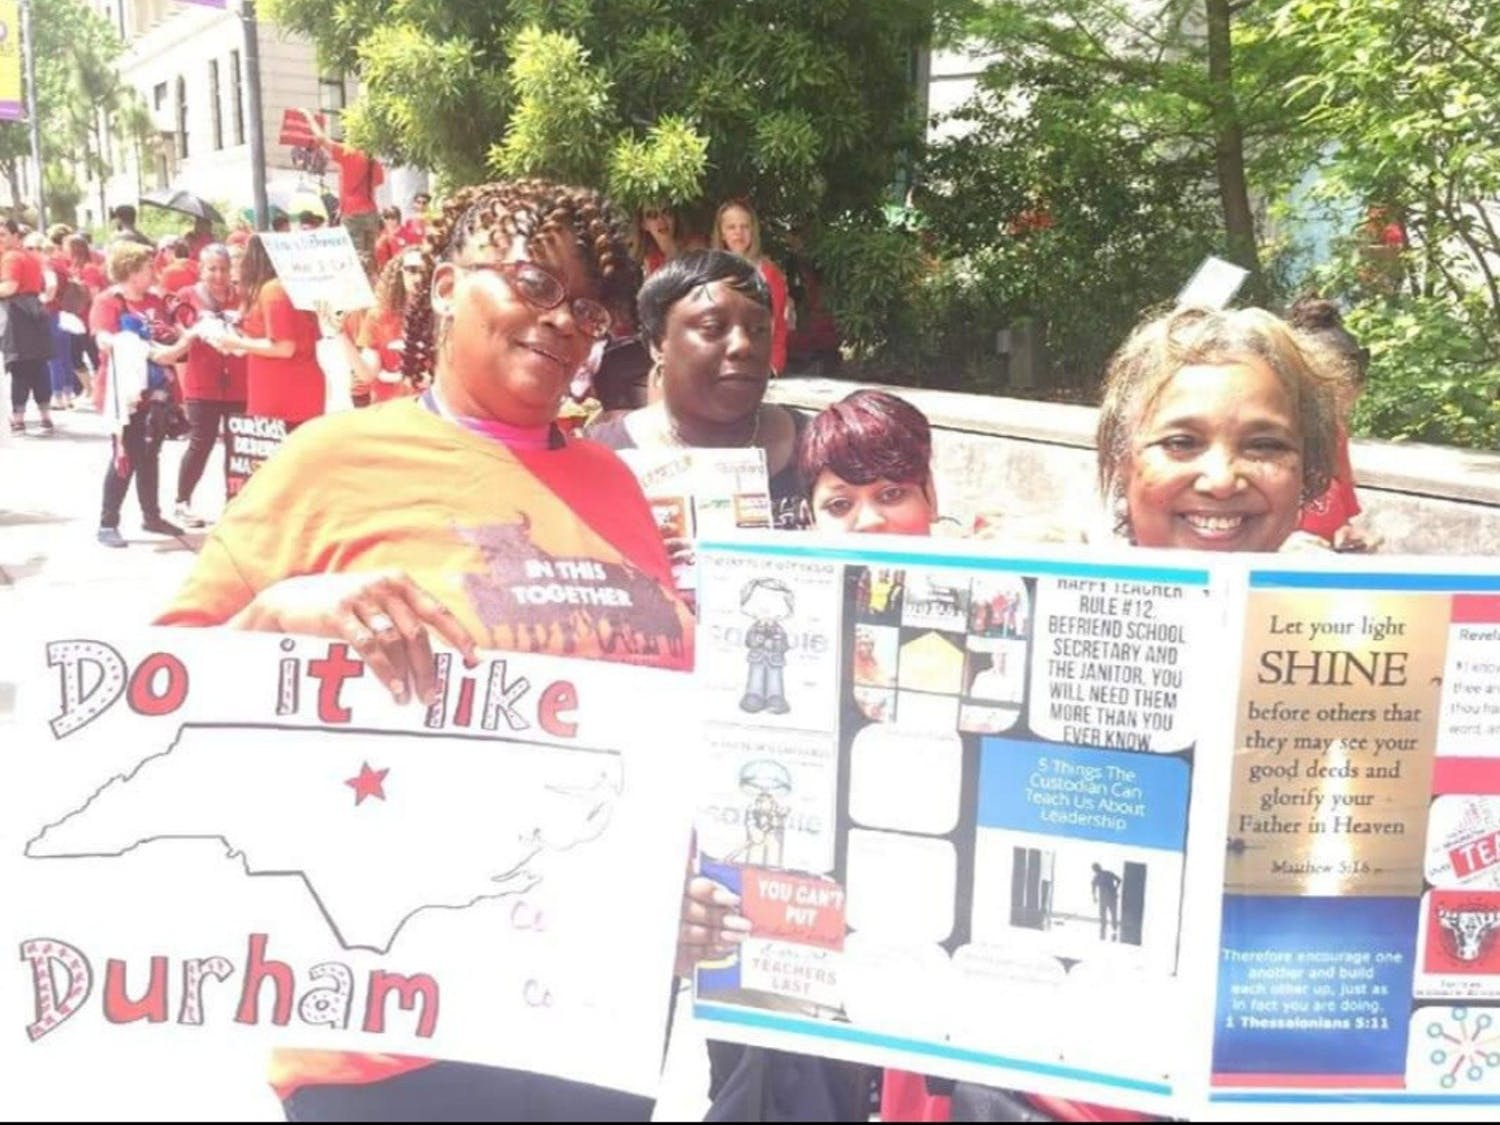 DPS custodians like Deborrah Bailey (right) attend the 2018 NC Public Schools Teacher Rally in Raleigh Day of Advocacy to fight to become in-house district employees rather than contracted. Photo courtesy of Deborrah Bailey.